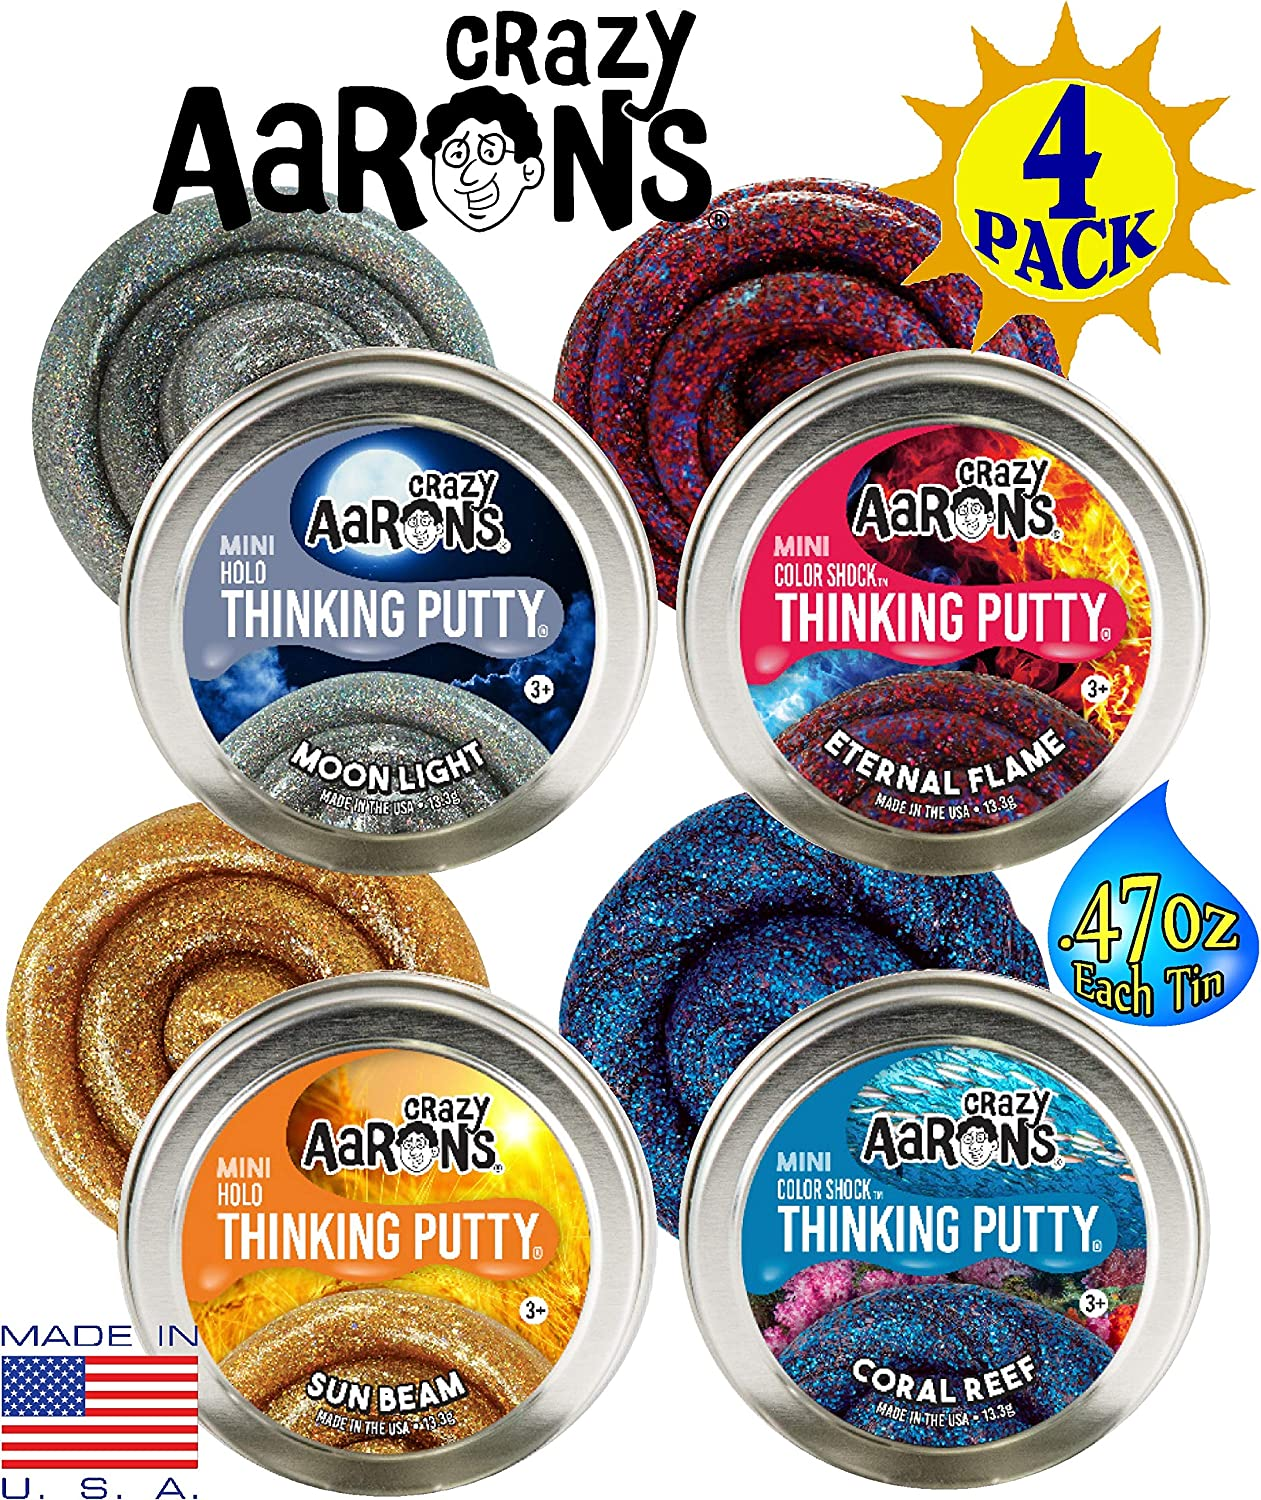 Crazy Aaron's Thinking Putty Color Shock & Holo Mini Tins (.47oz Each) Sun Beam, Coral Reef, Eternal Flame & Moonlight Gift Set Bundle - 4 Pack